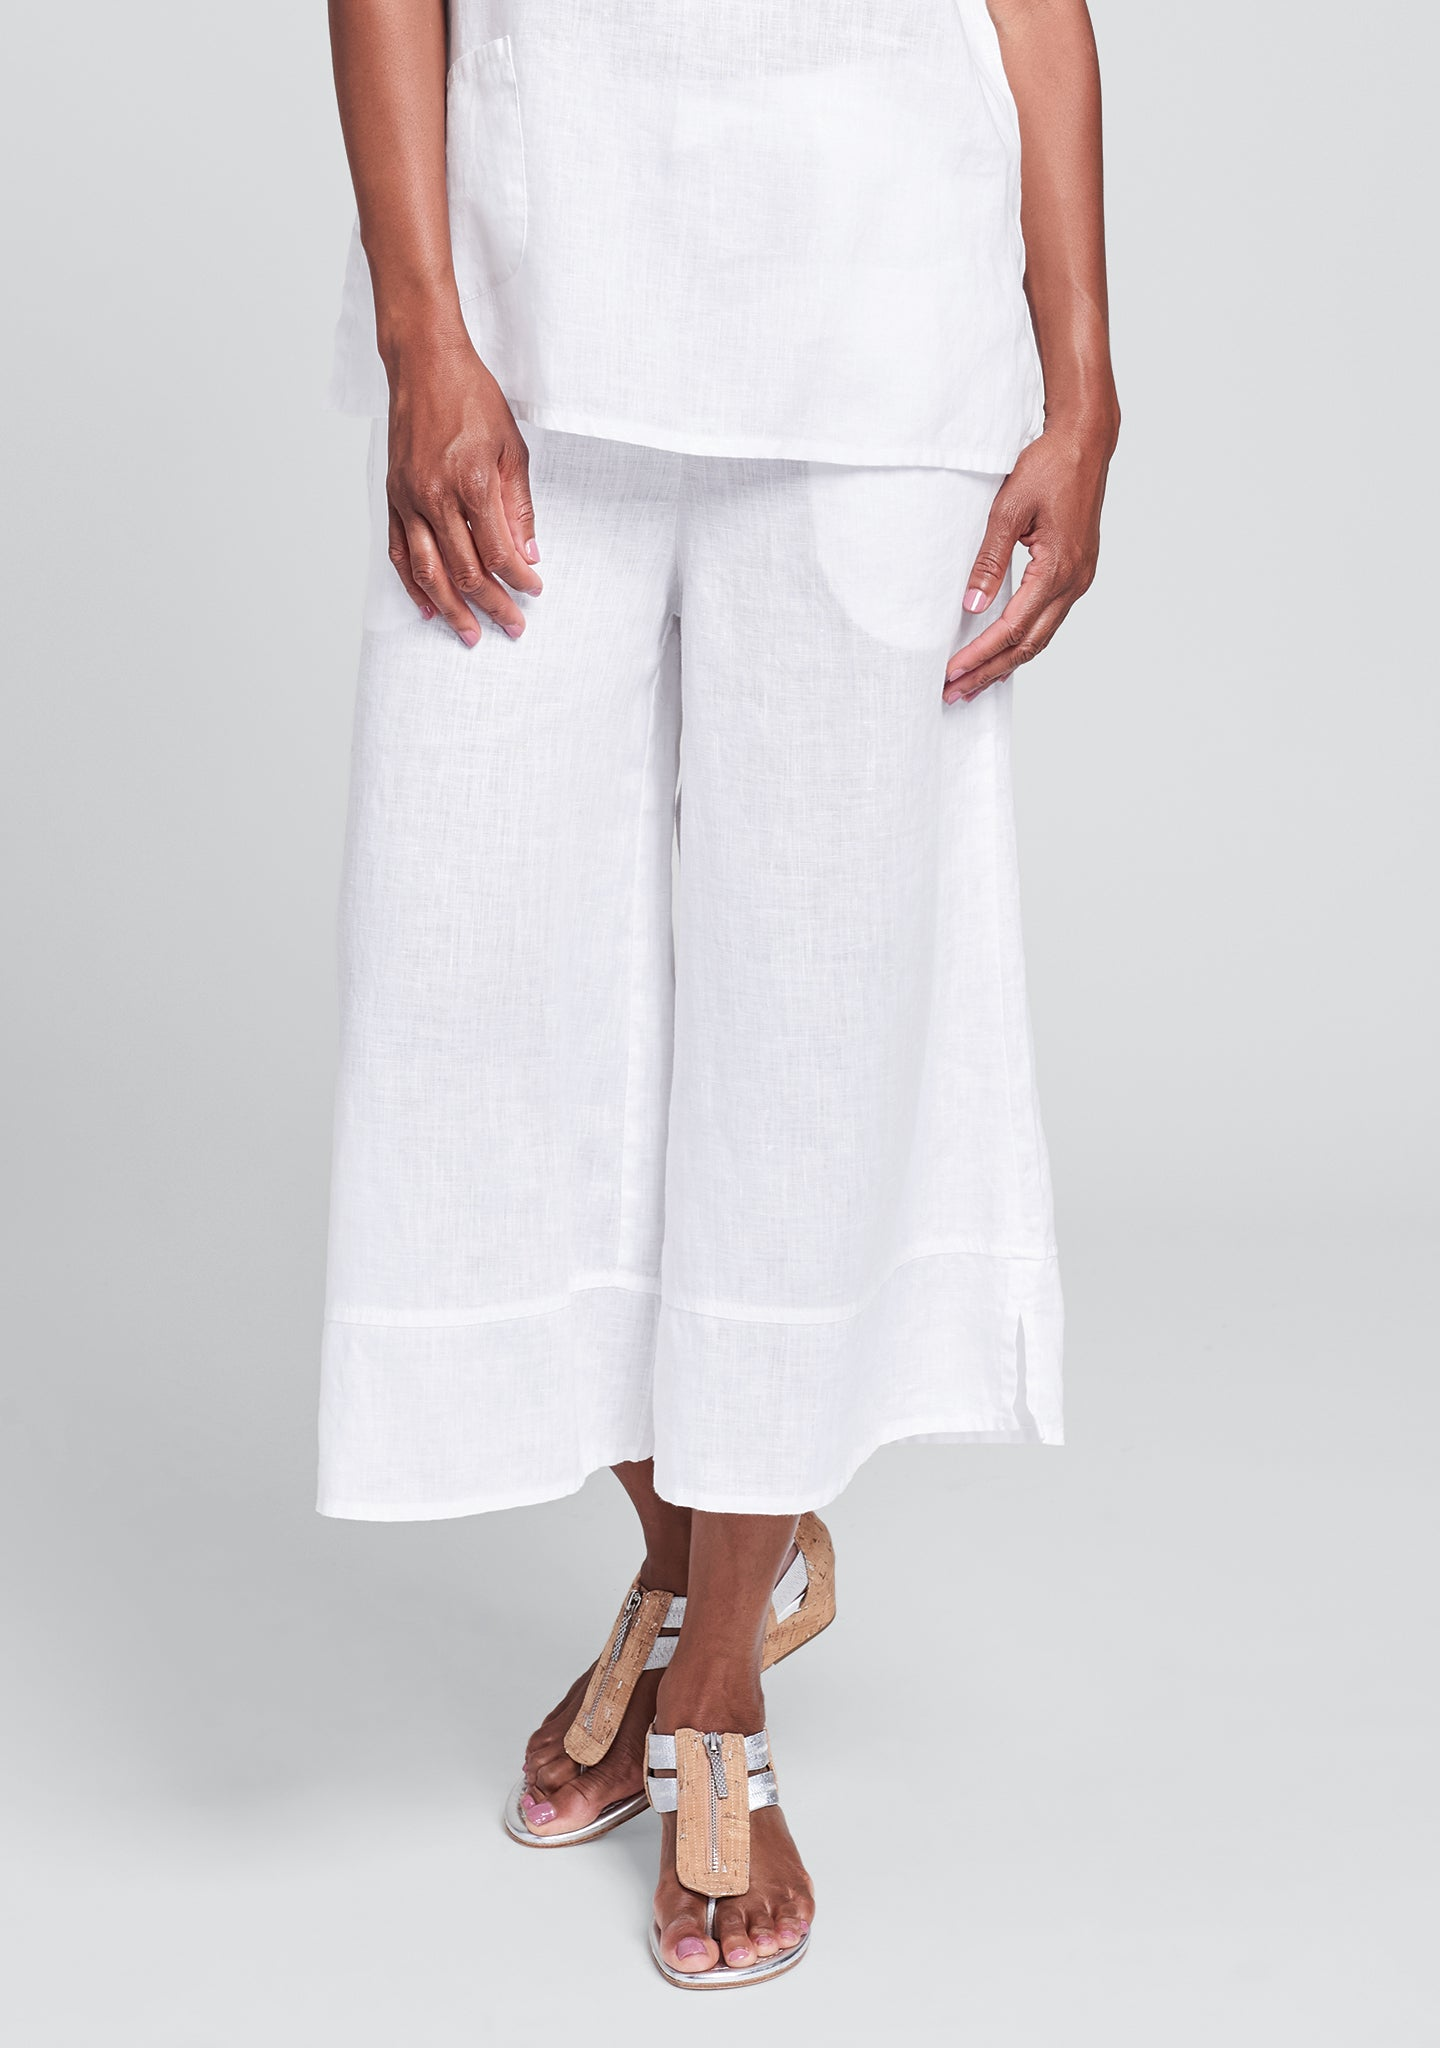 bloom pant linen pants with elastic waist white